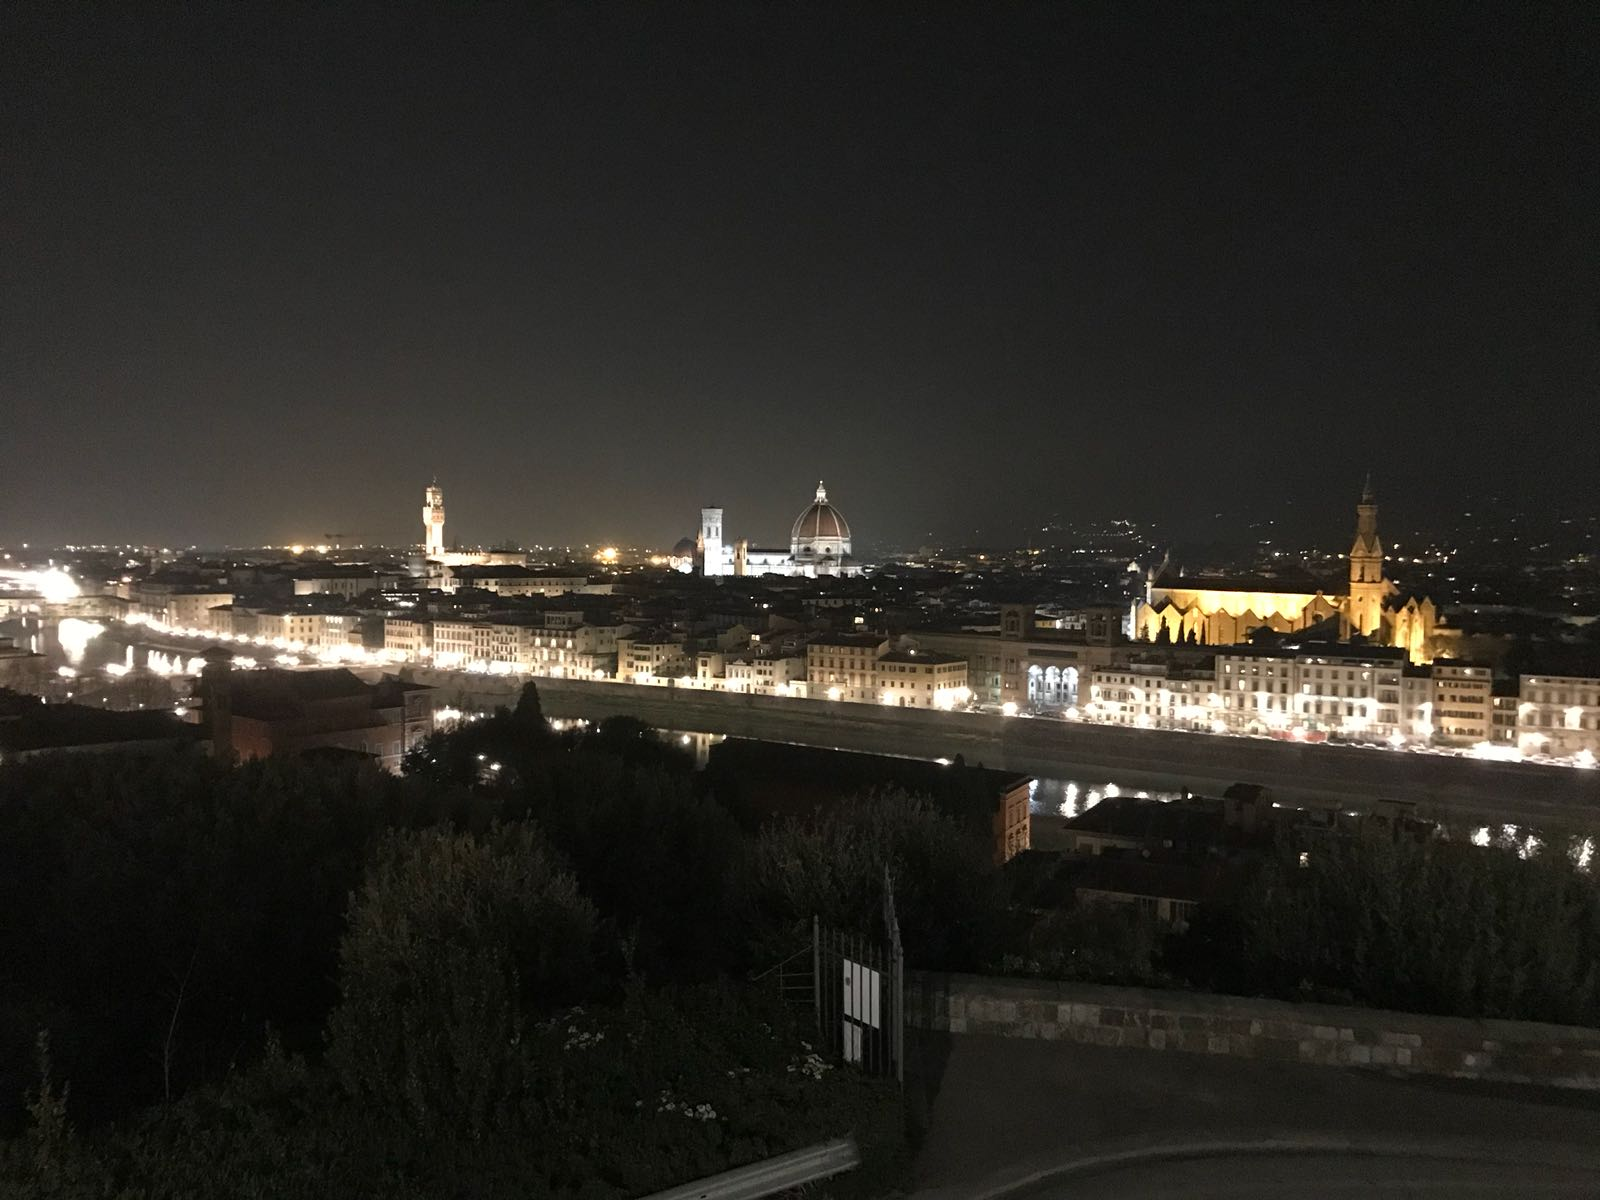 Florence by night, as seen from the Piazzale Michelangelo